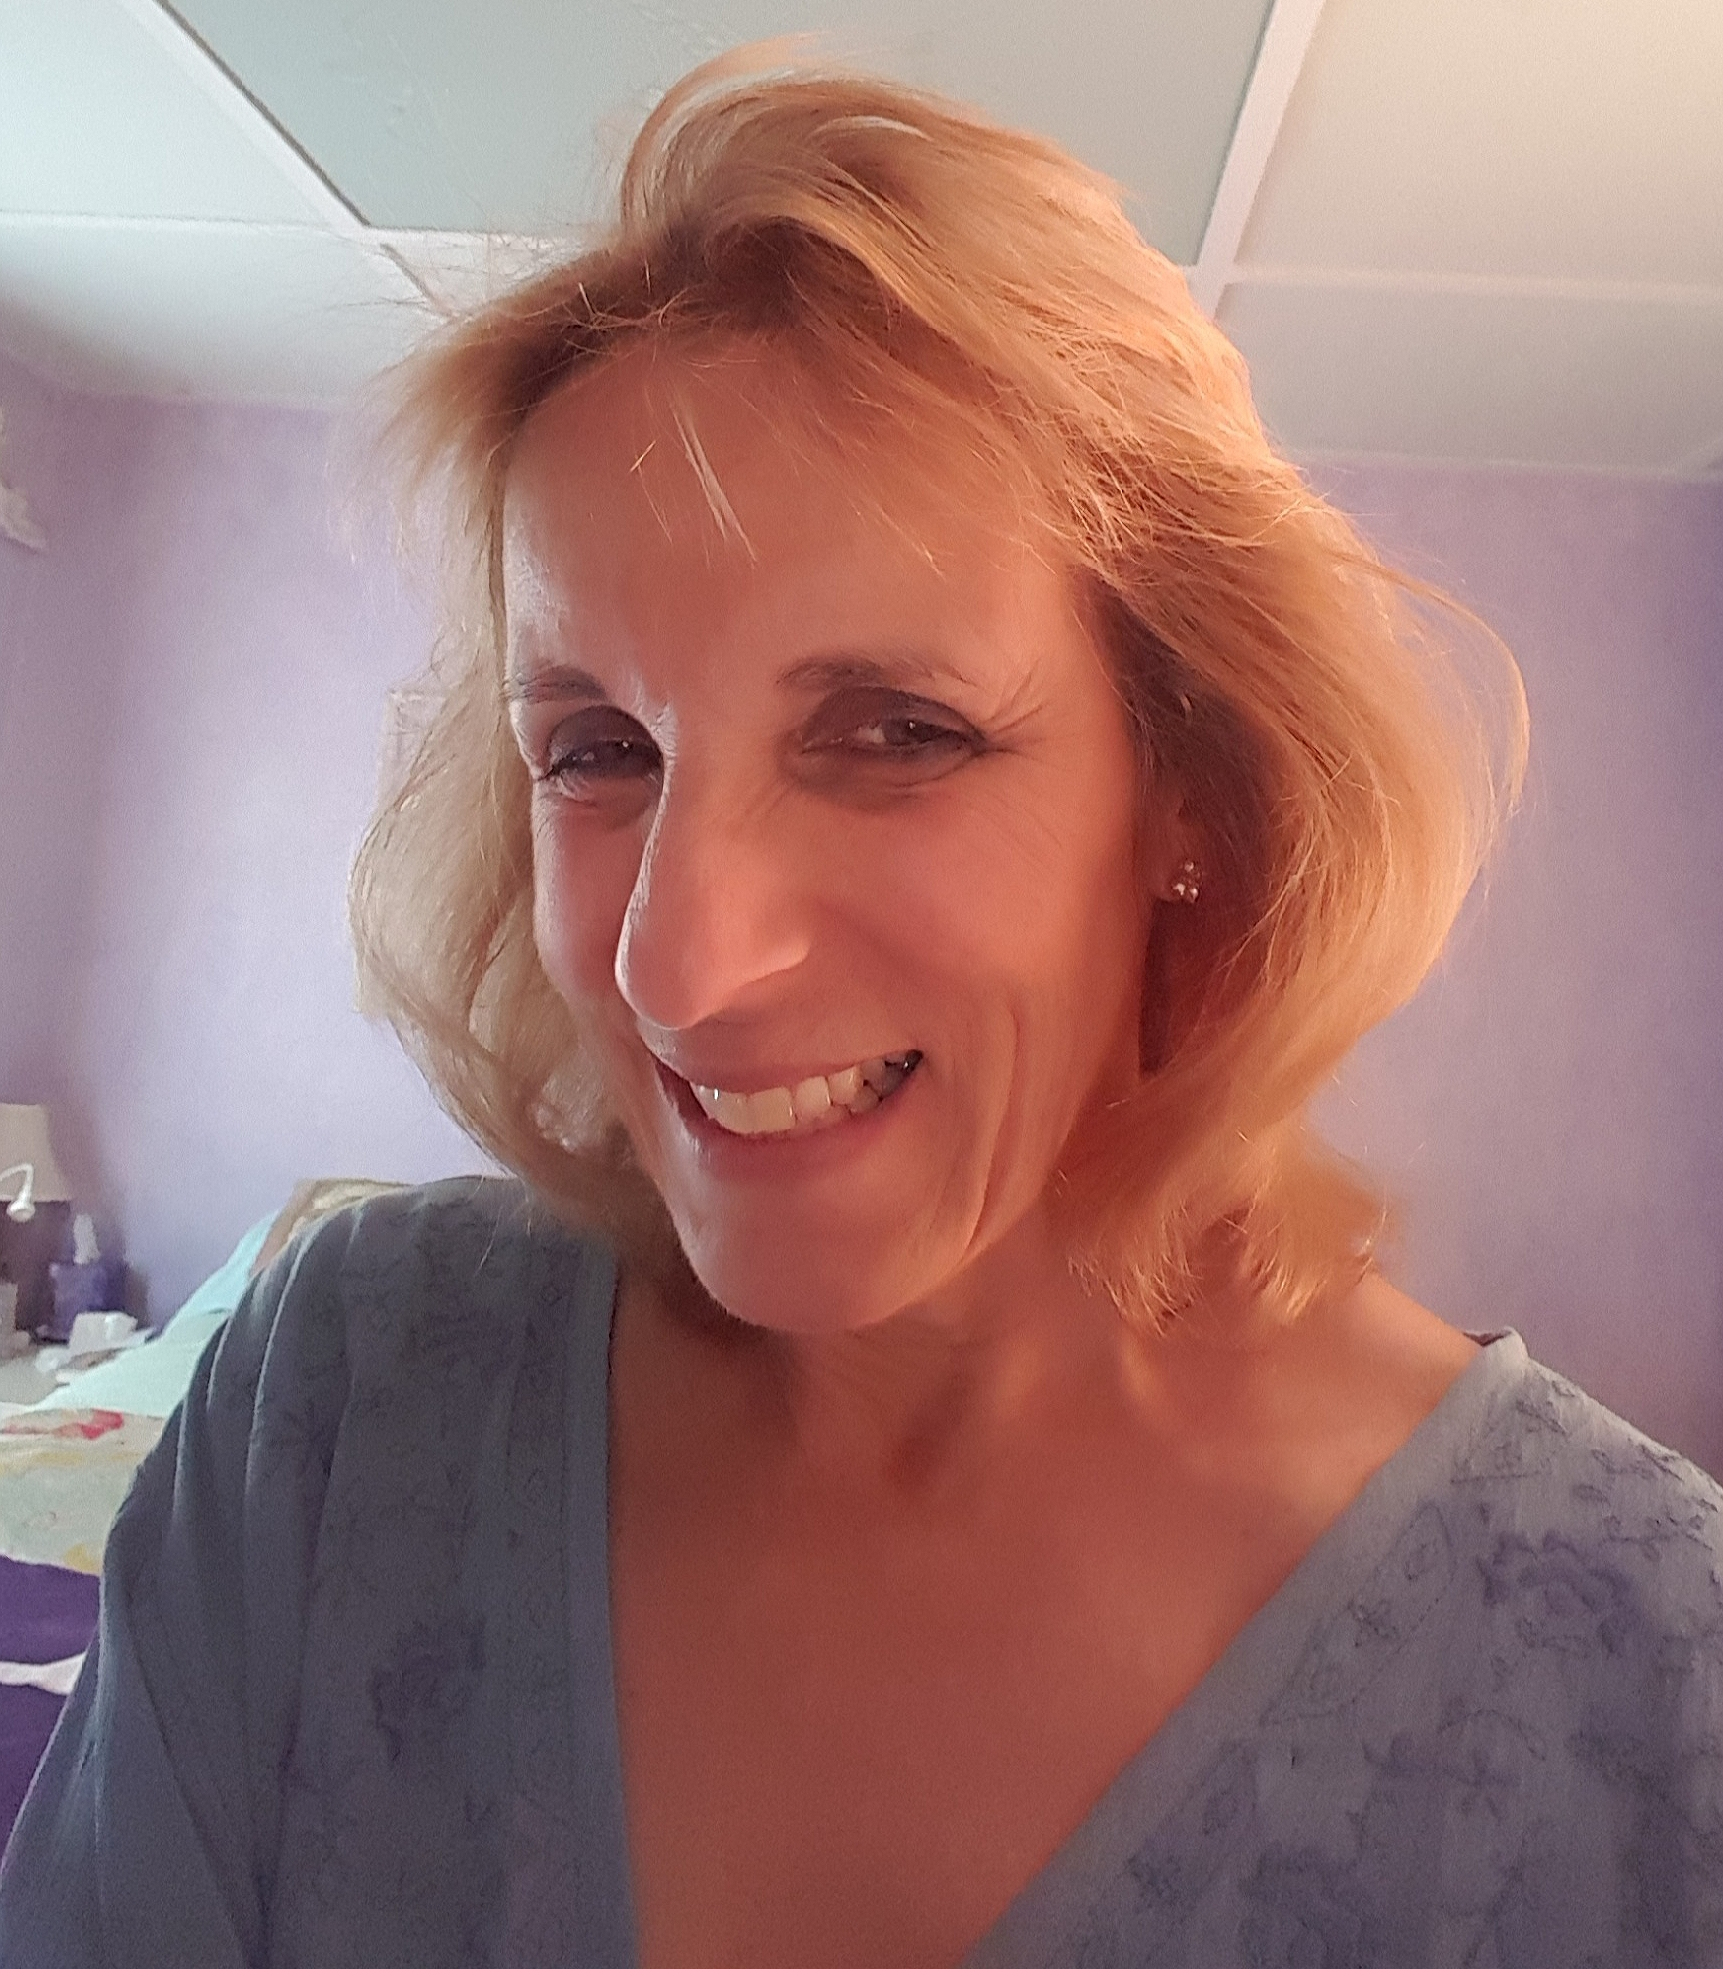 Hi! I'm Betty Buffin - As a graduate of New York's Fashion Instuture of Technology. Betty Buffin has been a professional painter for nearly 25 years!. She has a true passion for her craft it shows in her dedication in running her lucrative painting business.Her paintbrush has embellished many private homes, medical offices and restaurants. Betty welcomes the challenge of transforming a lifeless wall into a custom tailored work of art!. She has skillfully produced imaginative masterpieces ranging from a realistic football arena to 4ft x 5ft panels depicting ancient Greece for a church project.Betty's newest creations have been painting custom glassware!. Her last count was over 100 one of a kind painted wineglasses. Each one tells it's own story and no two are alike!. There is no end in sight to what the world will see and Betty will develop every project to its full potential!!